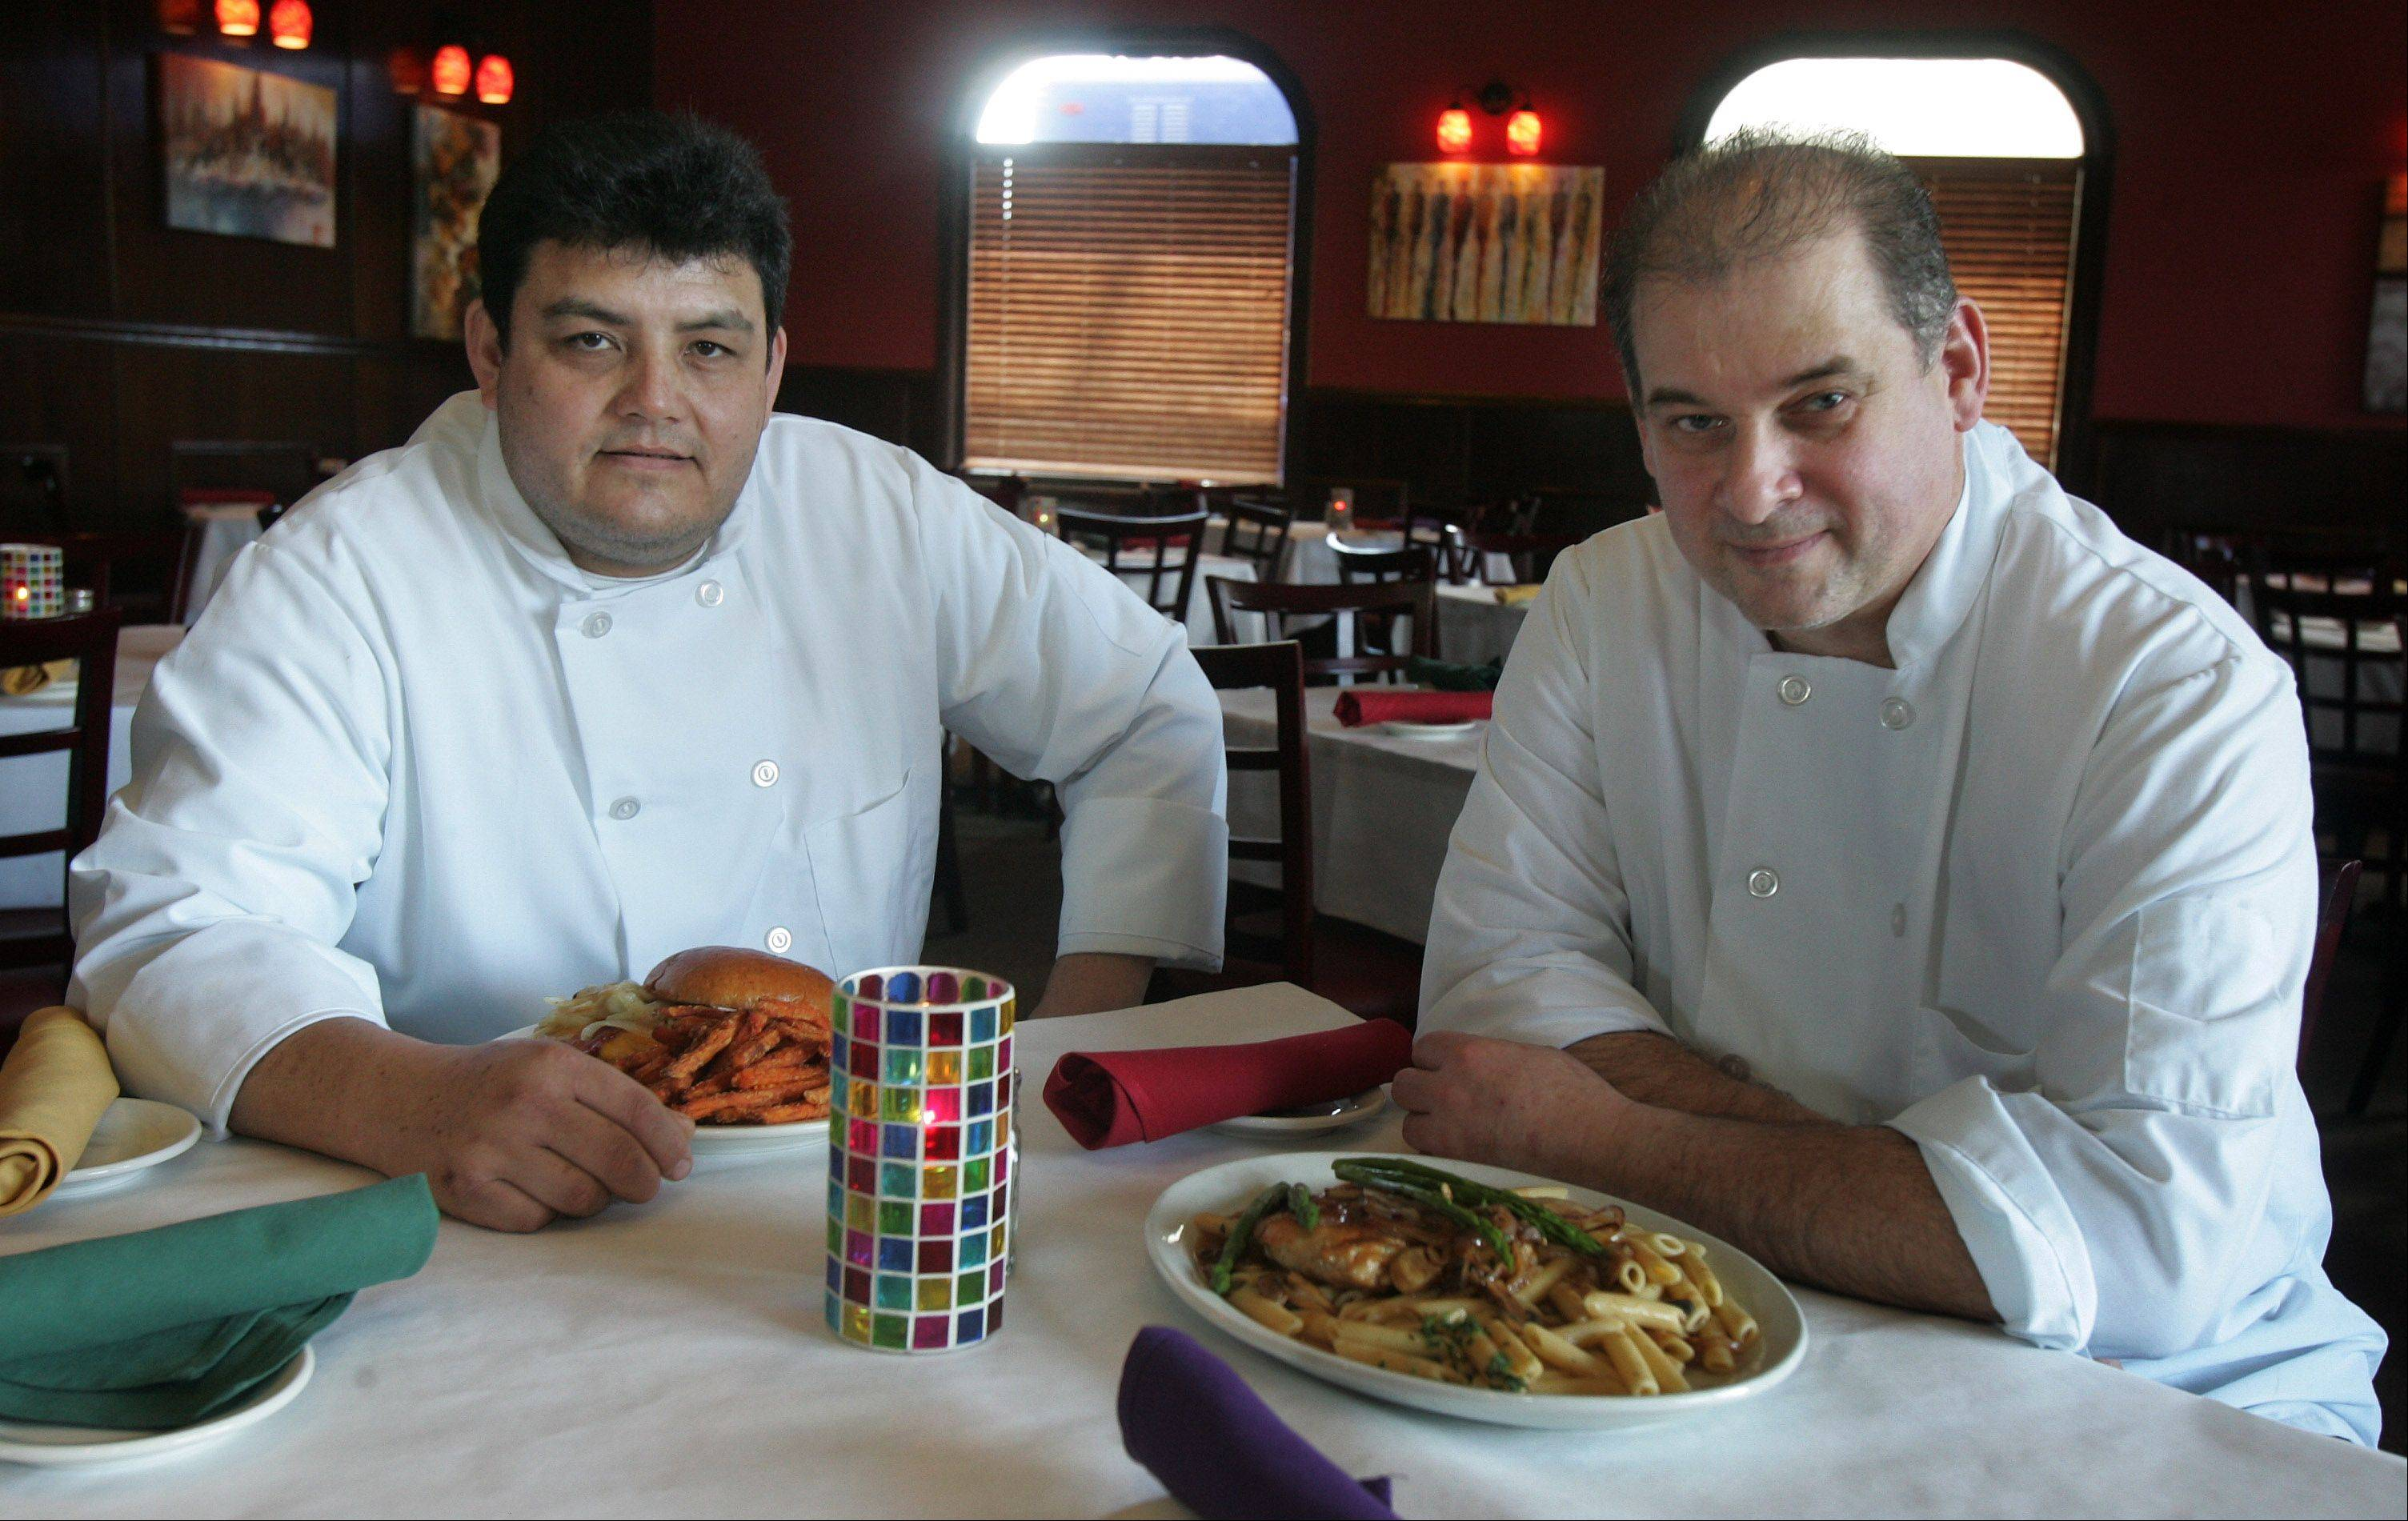 Executive chef John Warren, right, and sous chef Fernando Flores, man the stoves at Confetti's in Gurnee.